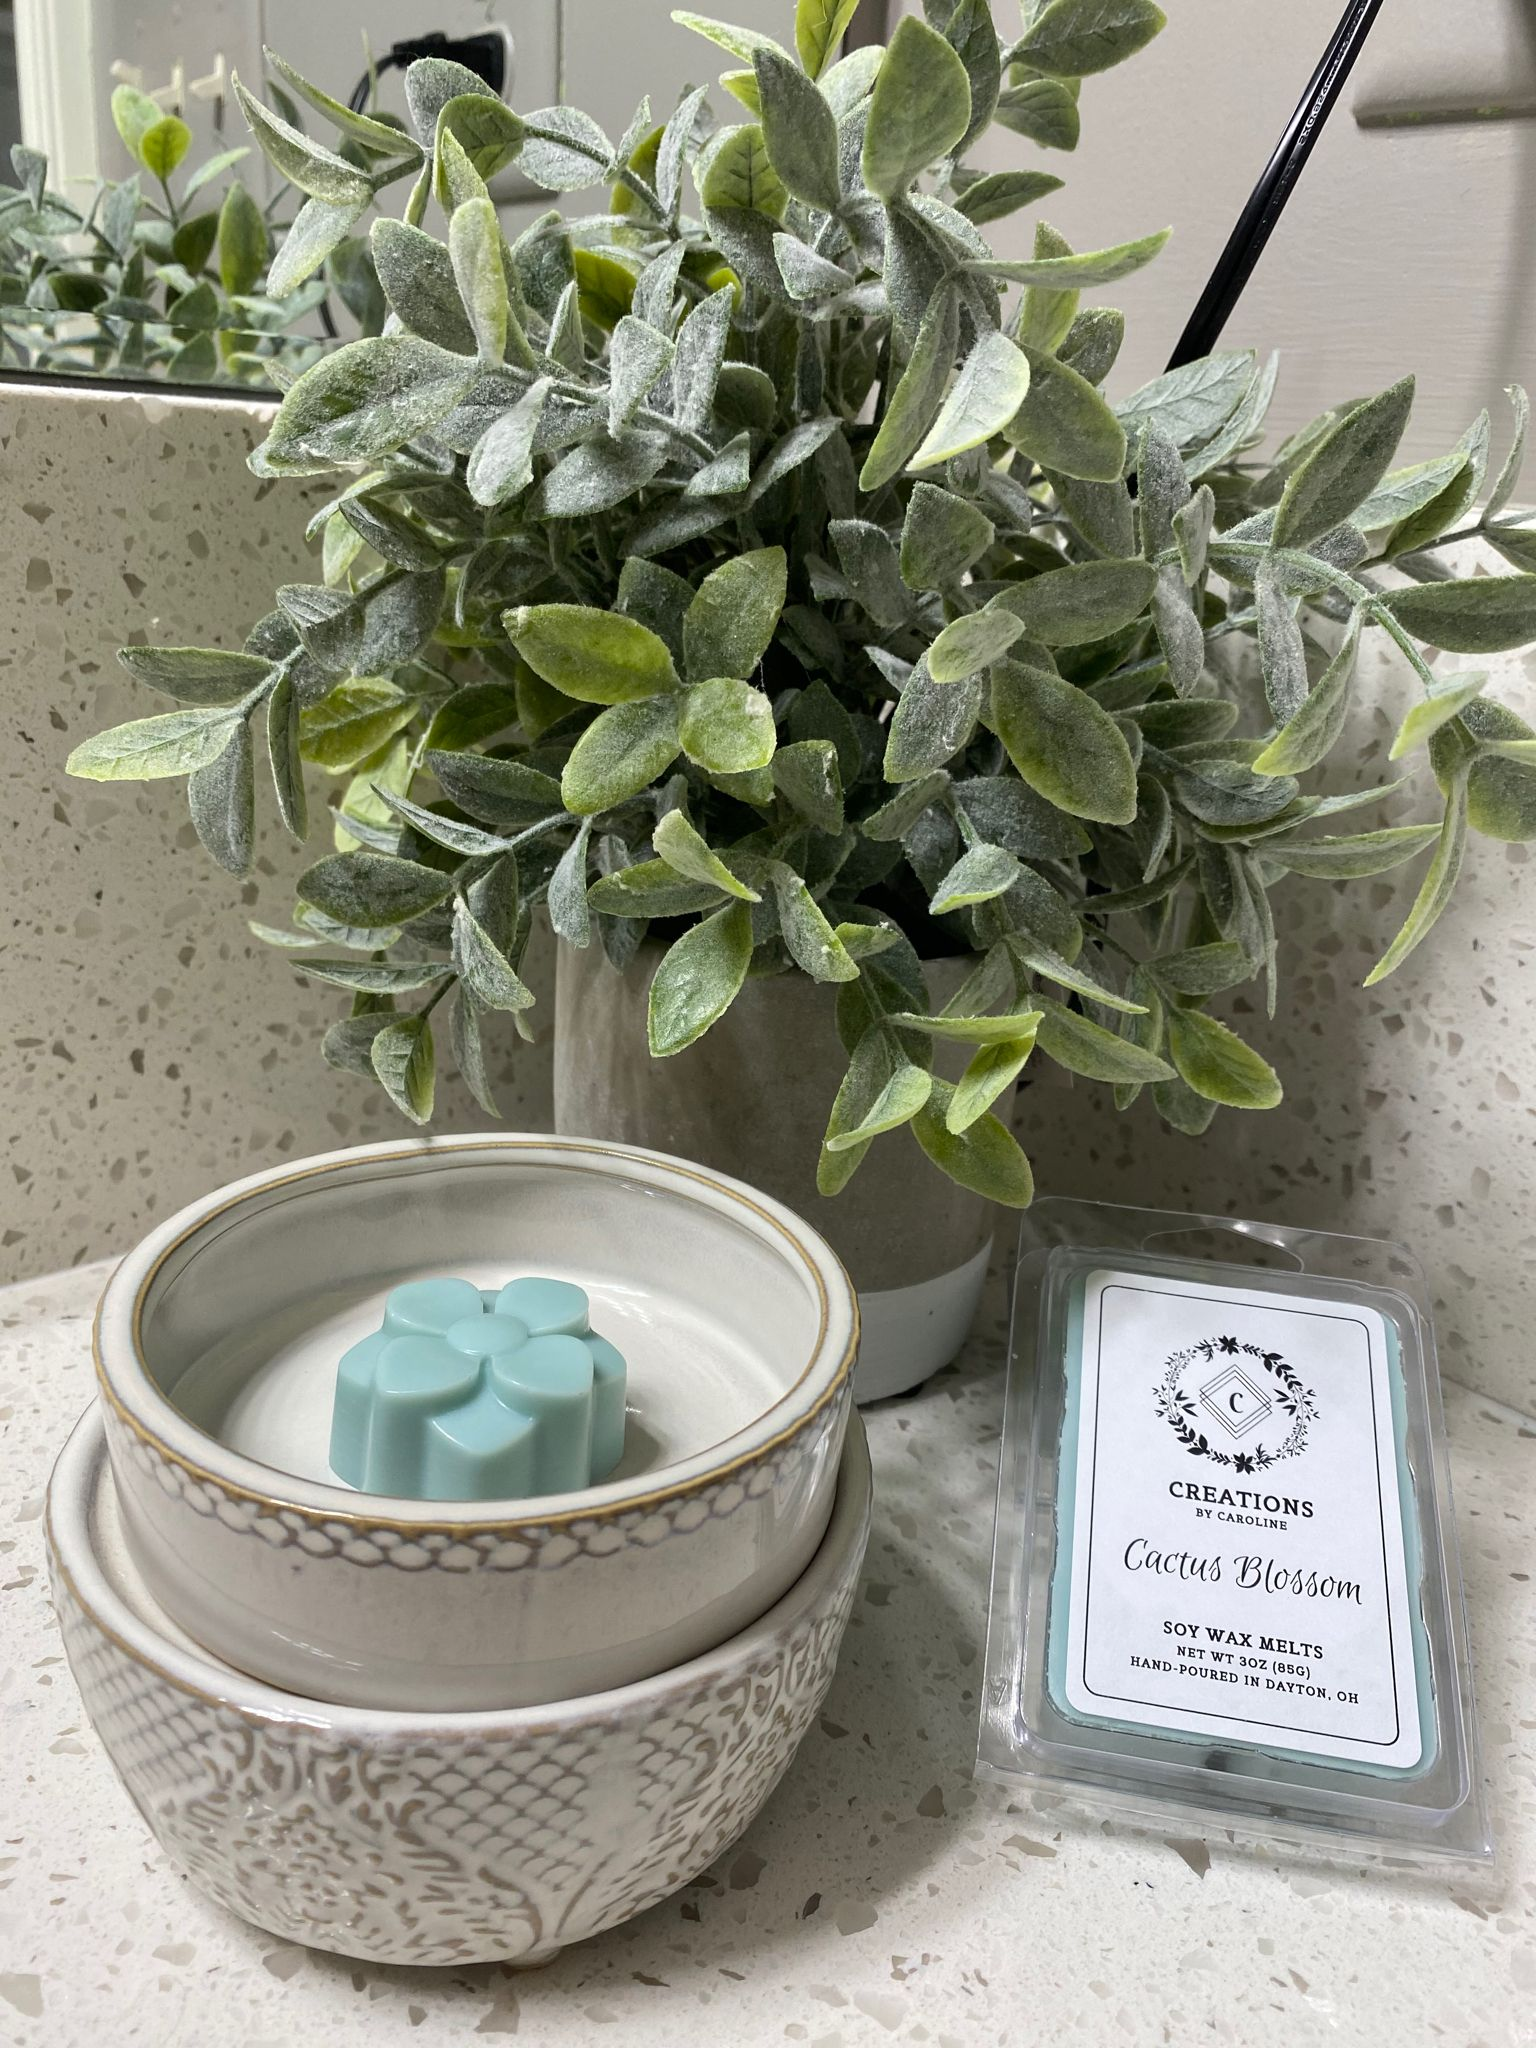 New wax melt scents are being uploaded to Etsy now! First on the list—- Cactus Blossom! Available in limited quantities. The Country Lemonade  Clean Cotton scents will be on Etsy today! —-also in limited quantities! Check out Etsy!  #etsysellersofpinterest #limitedstock #newscents